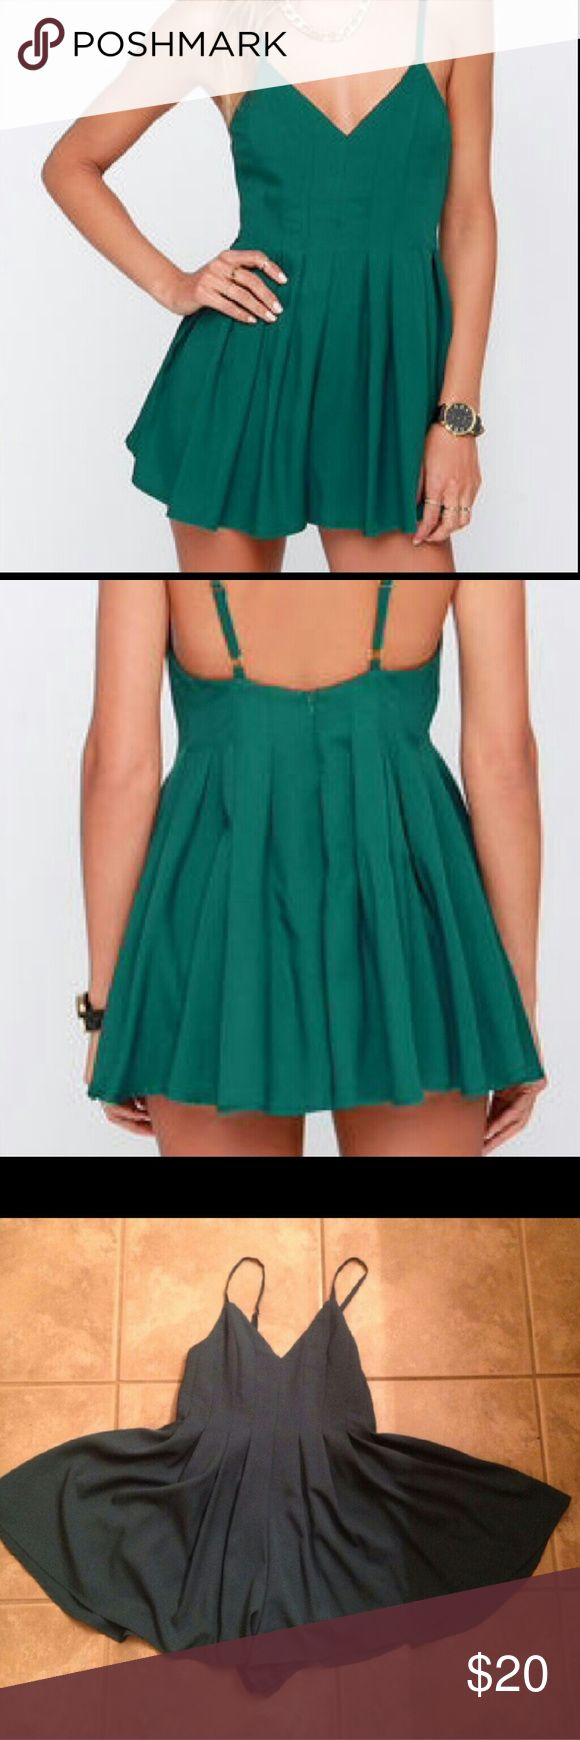 Lulus emerald green romper Worn three times. Great condition. Just don't wear it enough. Adjustable straps. Runs short, probably only suitable if you're 5' 1'' or under. Very cute on, perfect for festivals! Lulu's Pants Jumpsuits & Rompers